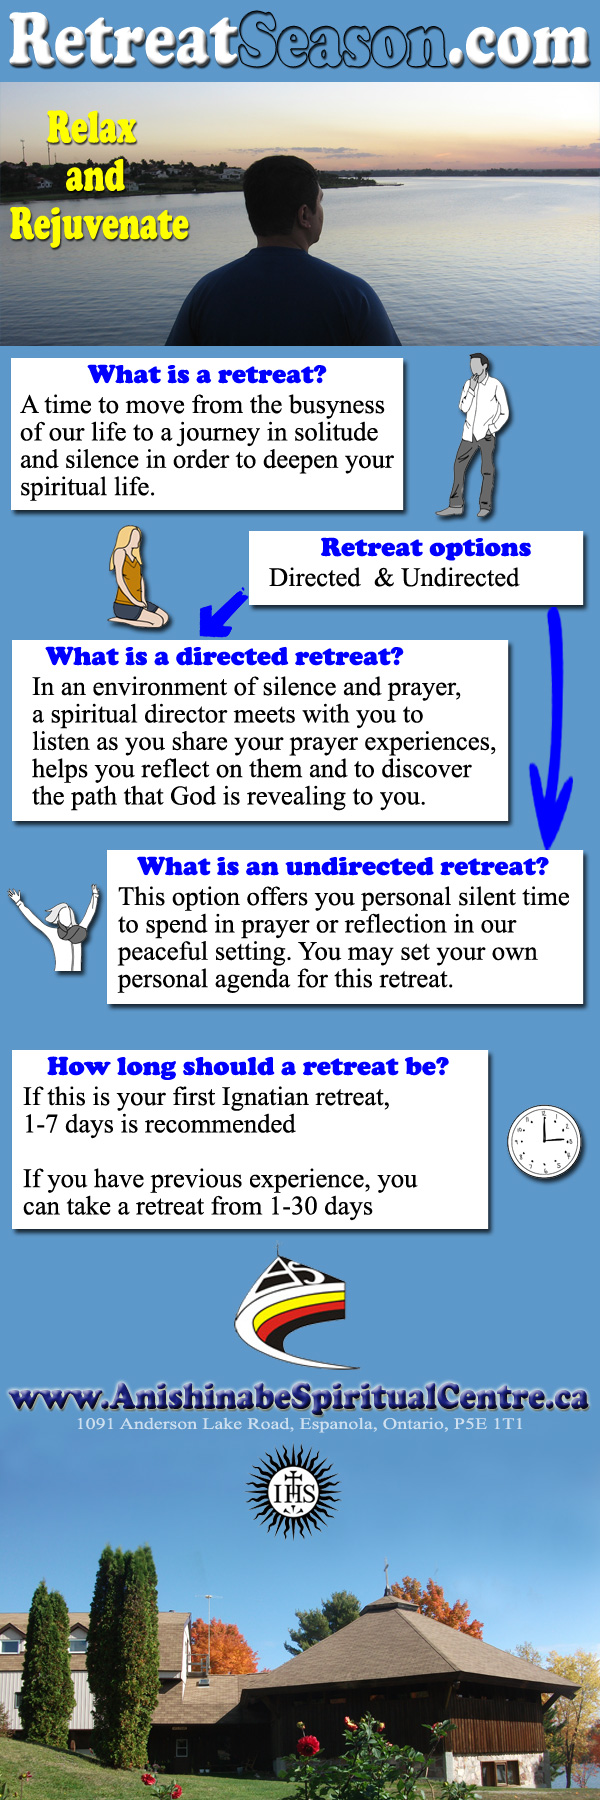 Infographic-Retreat-Season